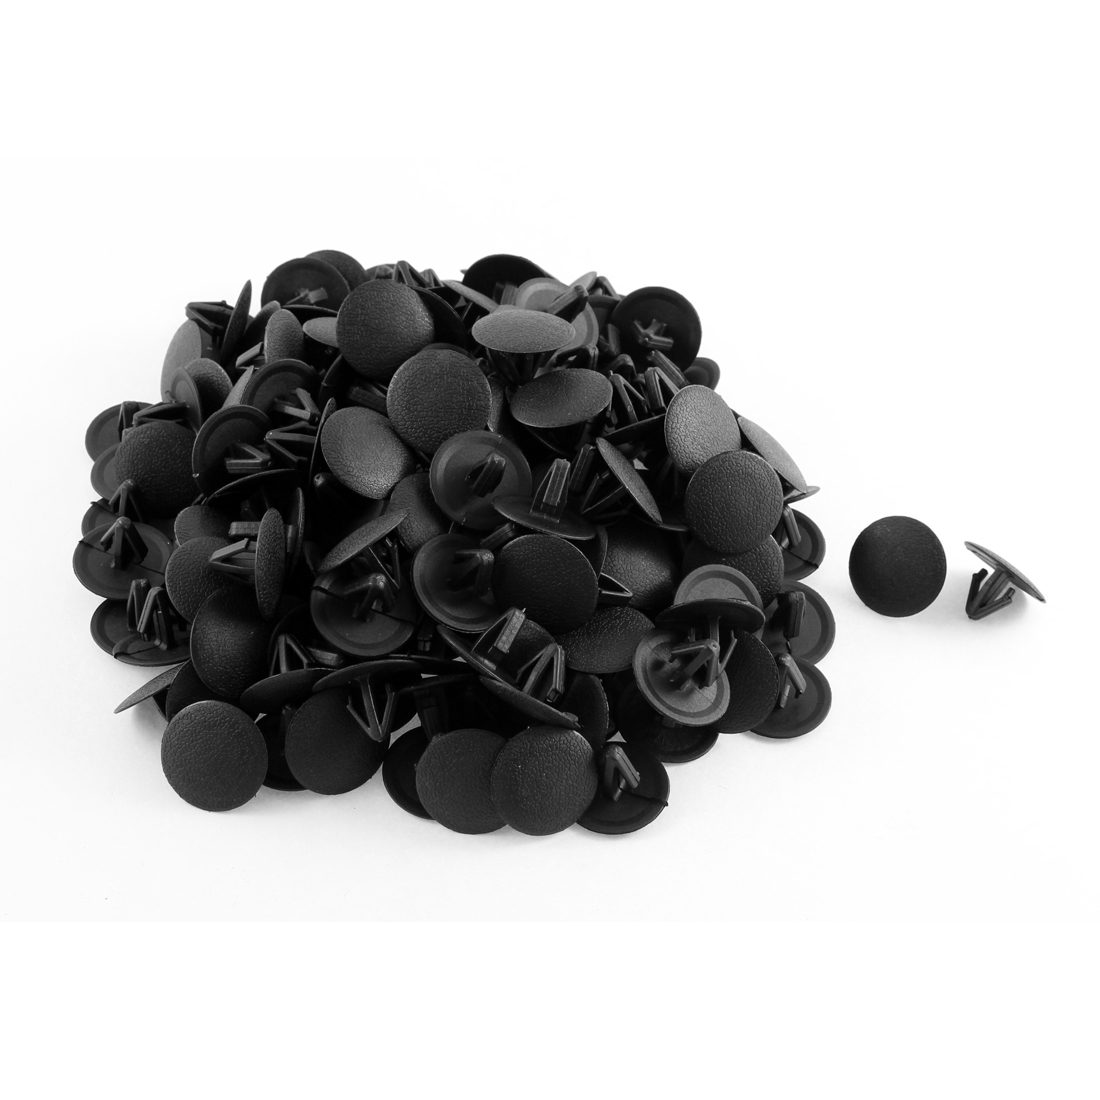 200 Pcs Black Plastic Rivet Trim Fastener Retainer Clips 11mm x 12mm x 25mm